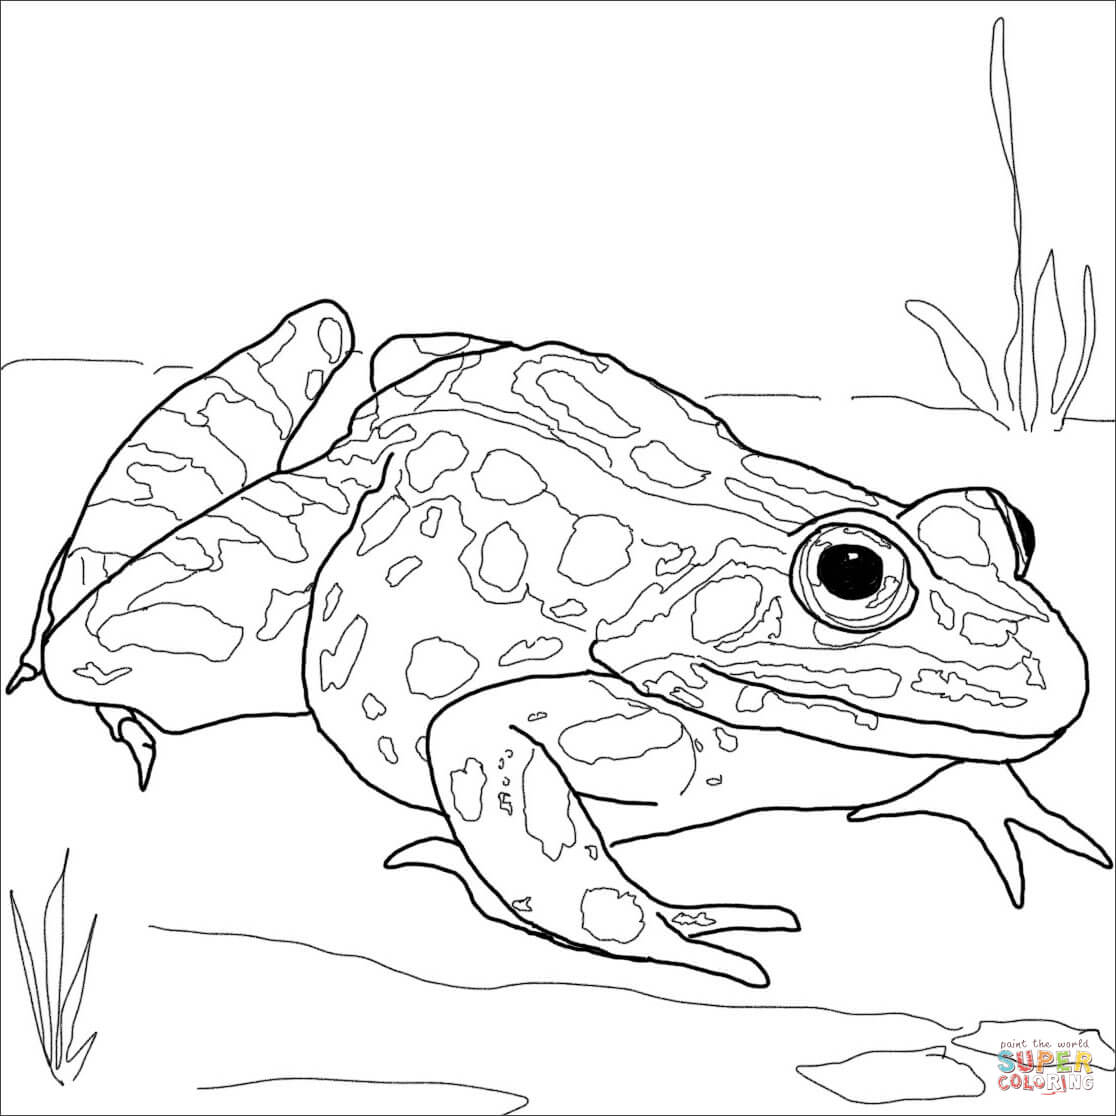 Free Worksheet Frog And Toad Together Worksheets frog and toad together coloring pages frogs co related free pages